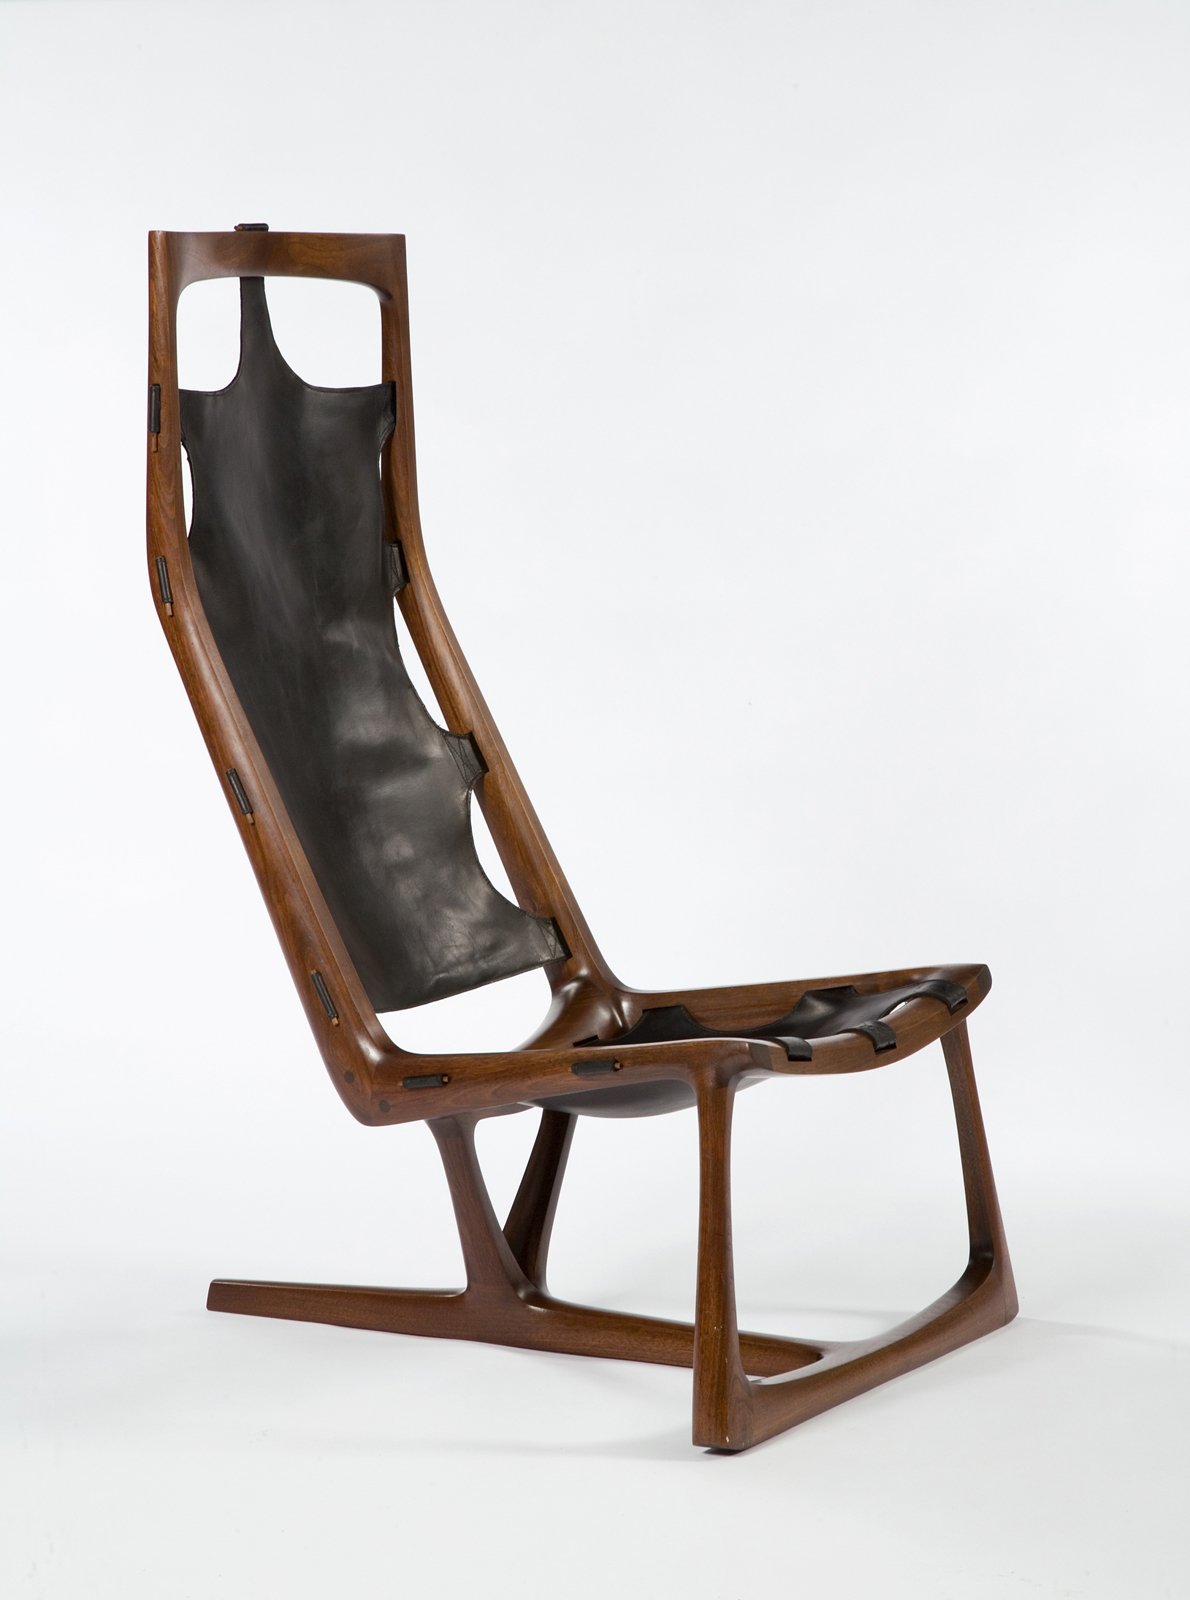 Modern wood lounge chair by Wendell Castle